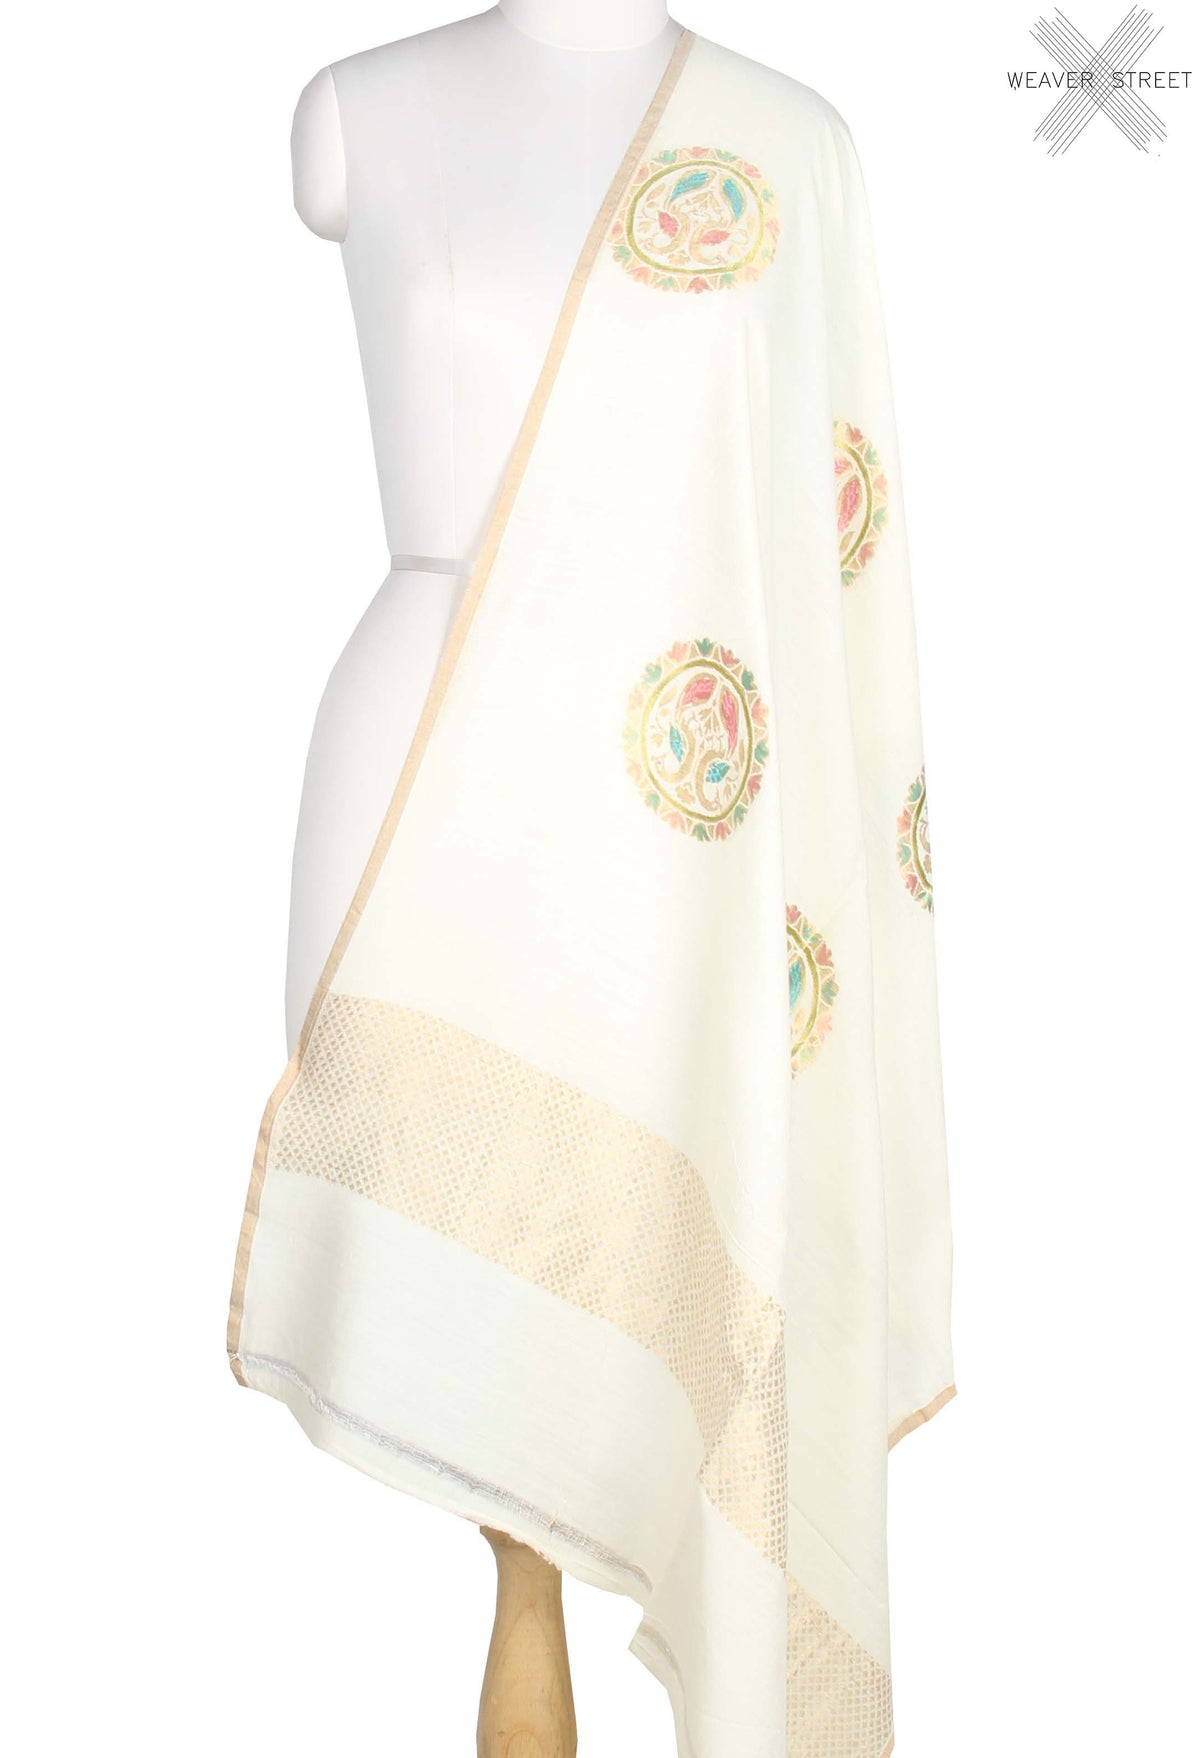 Off White Muga Silk Handwoven Banarasi Dupatta with peacock in round motif (1) main